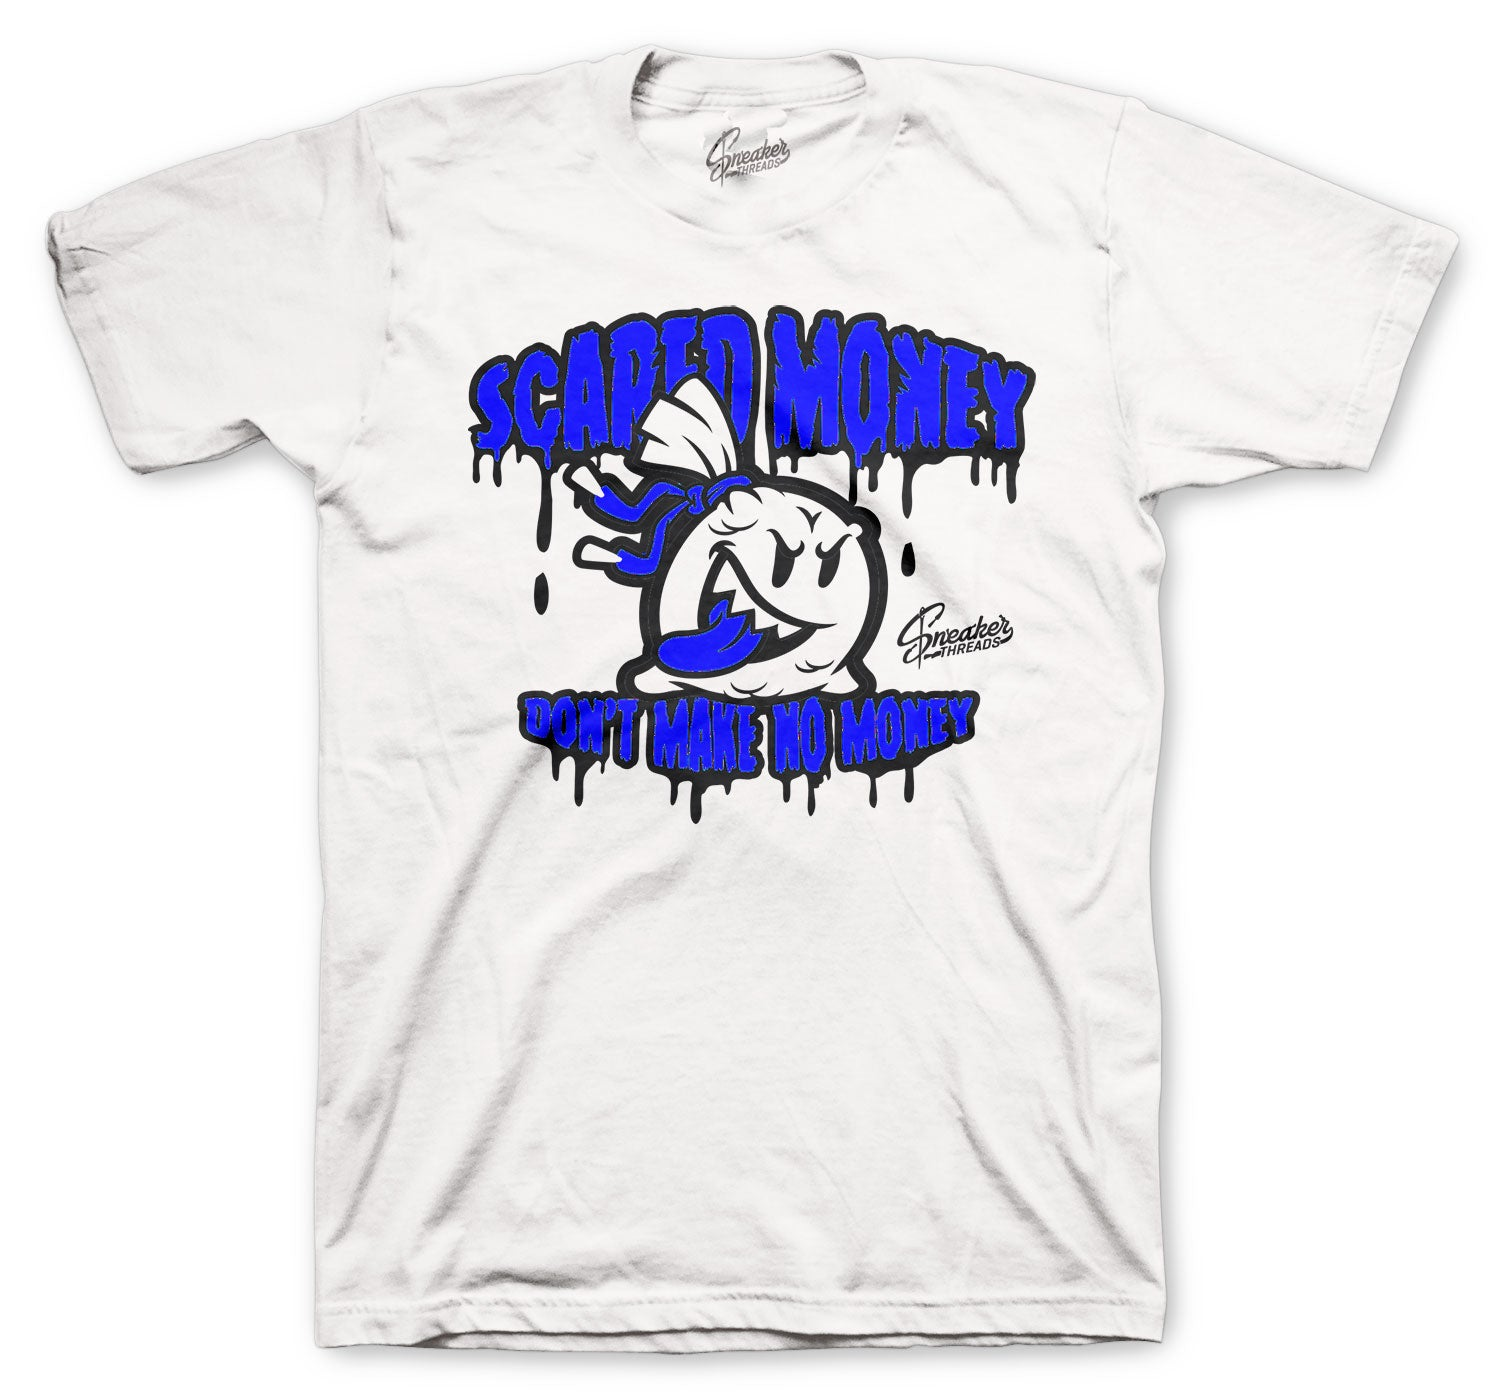 Jordan 14 Hyper Royal Scared Money Shirt